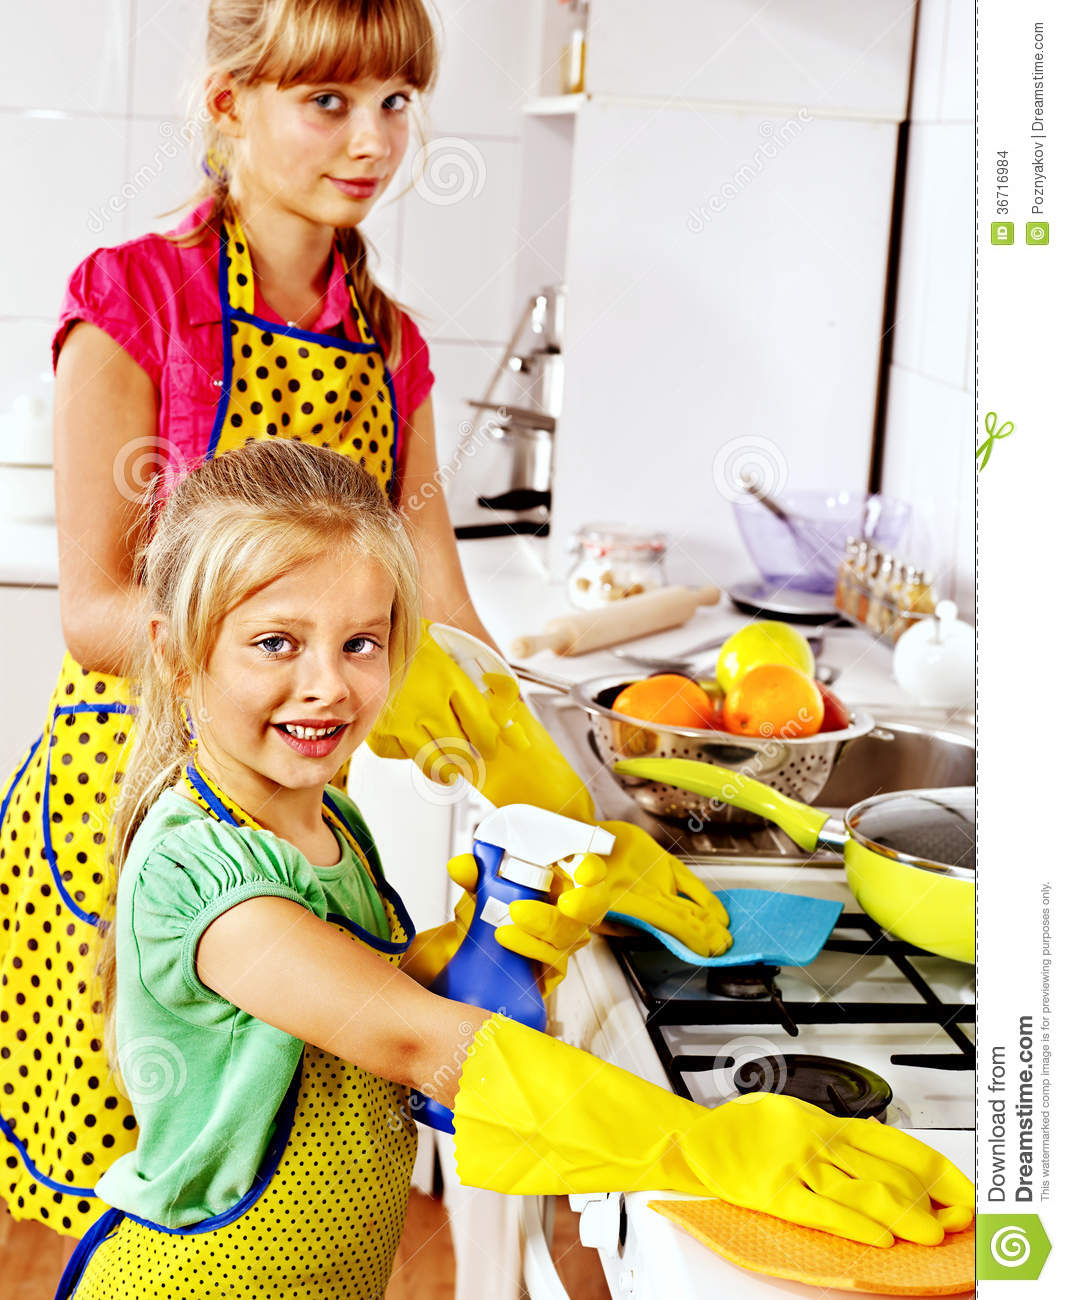 Children cleaning kitchen. stock photo. Image of home ...